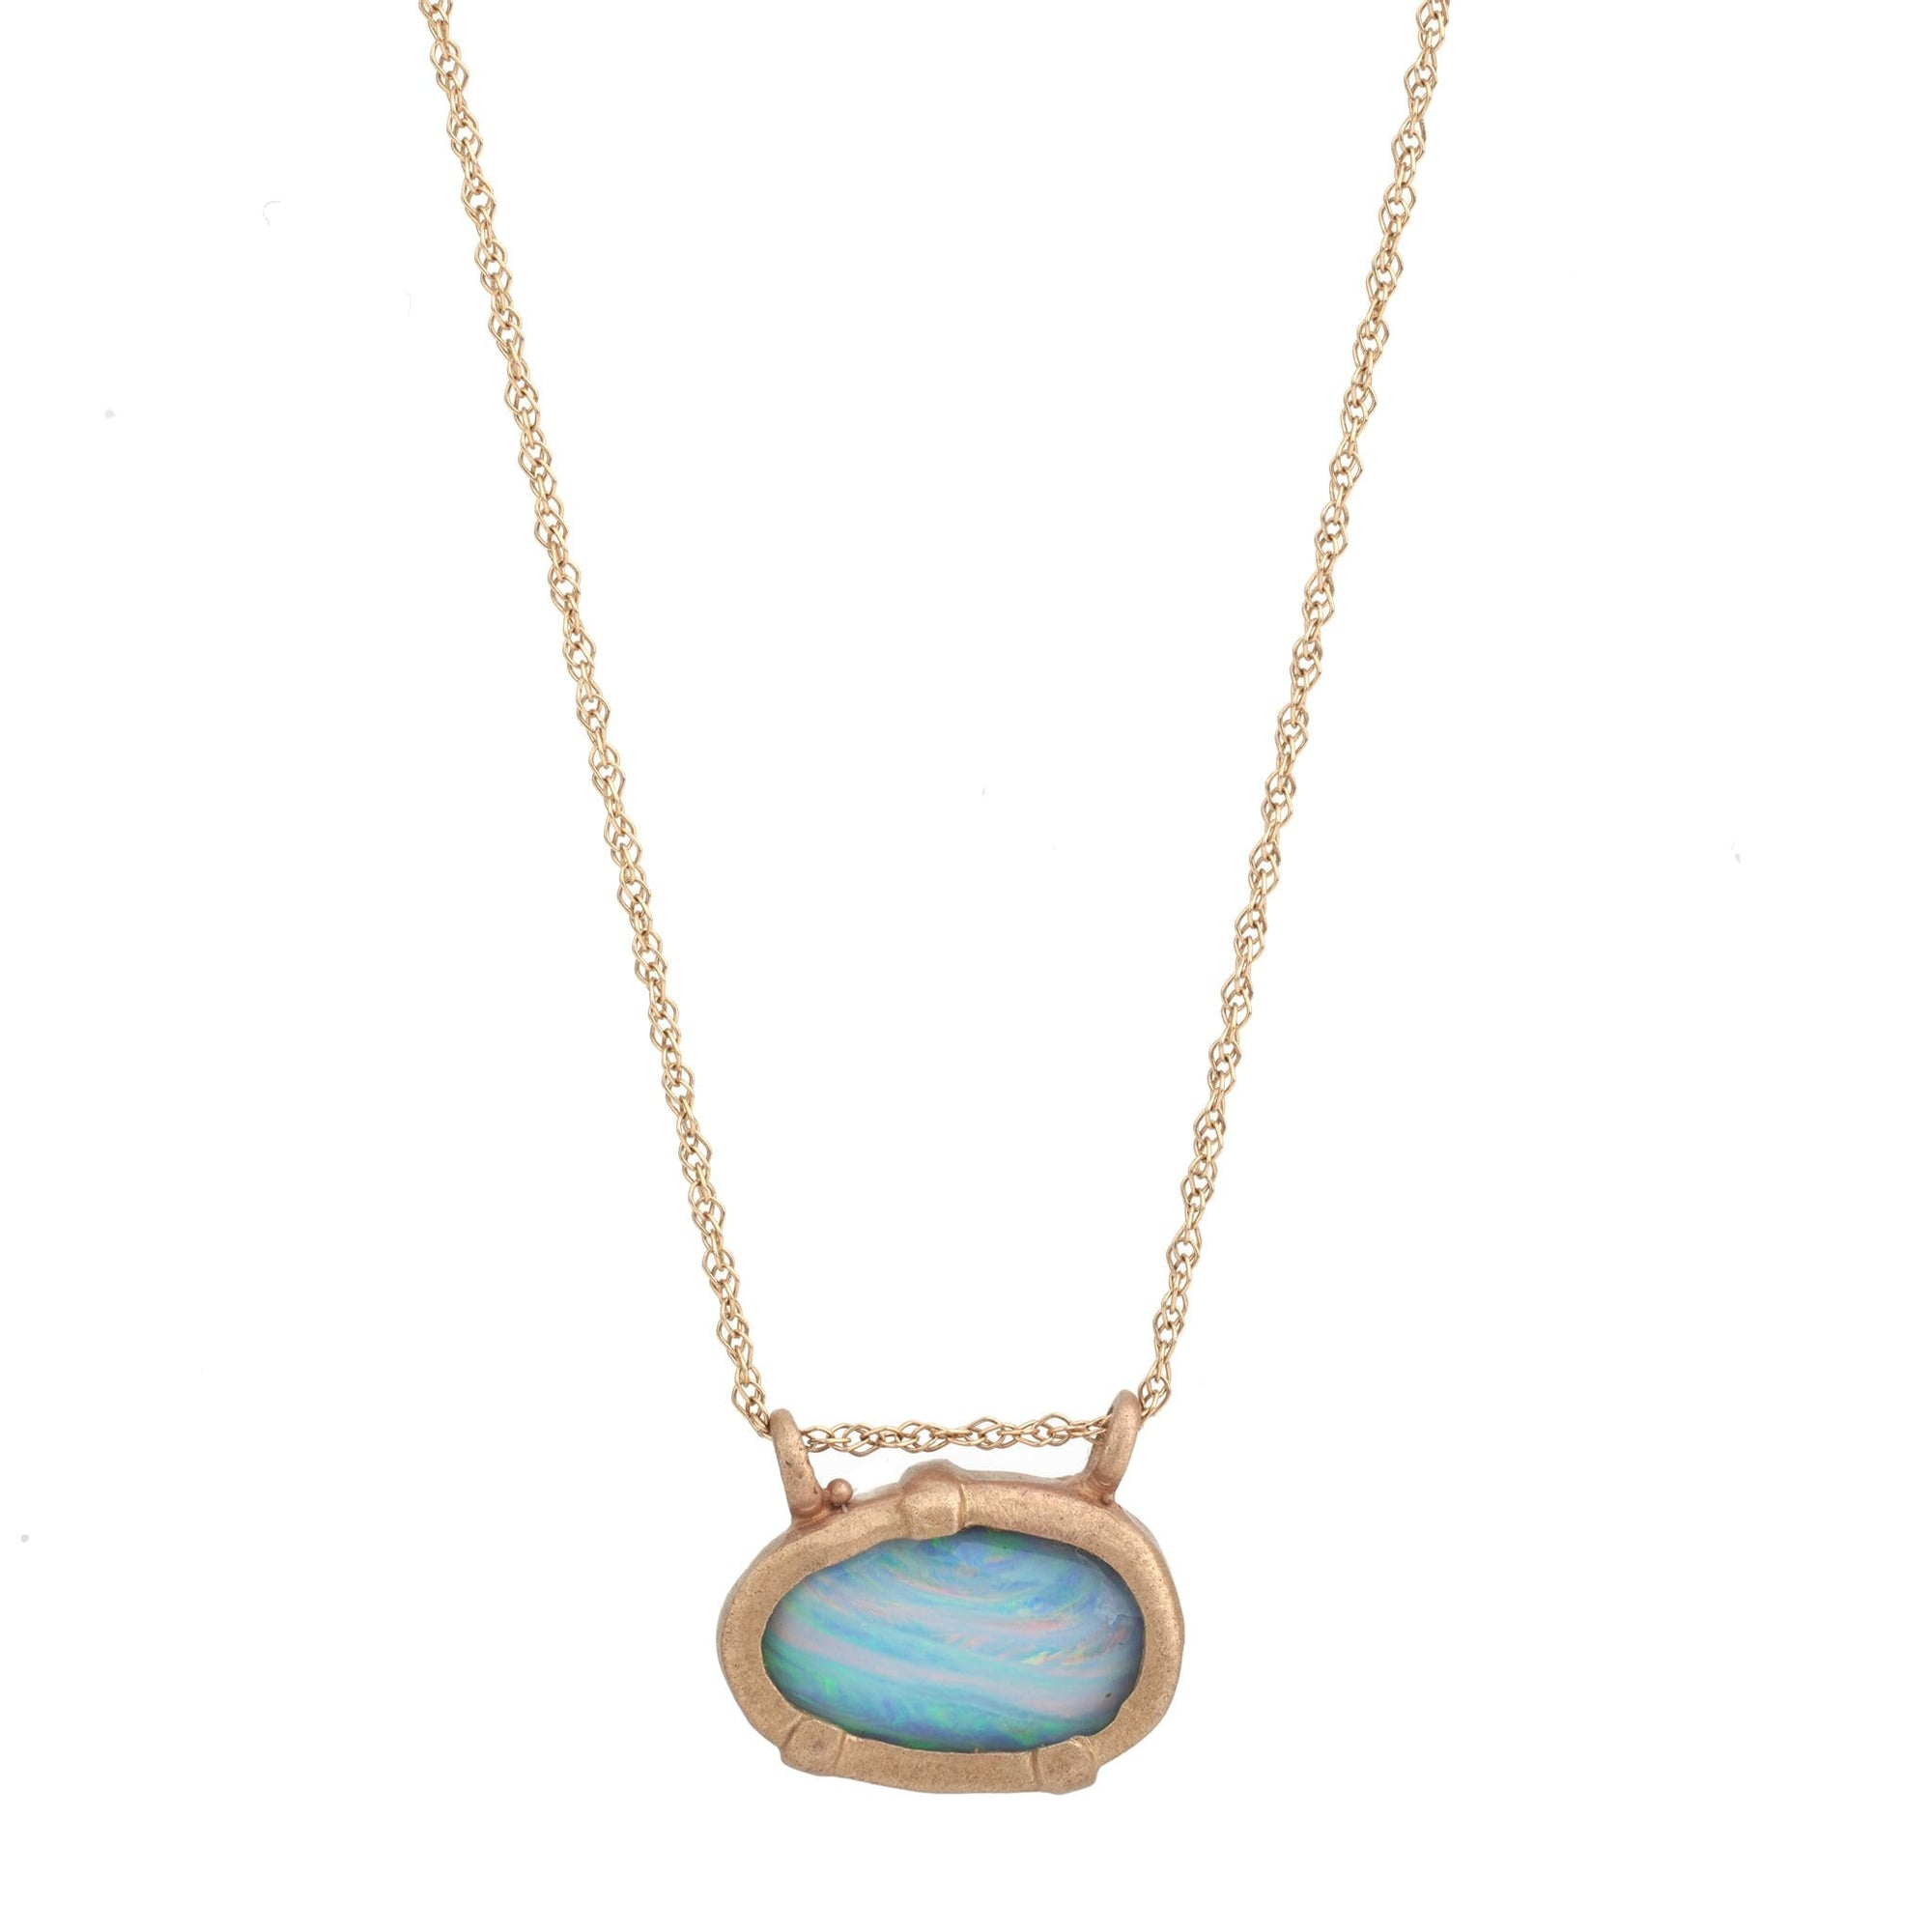 East West Australian Opal pendant